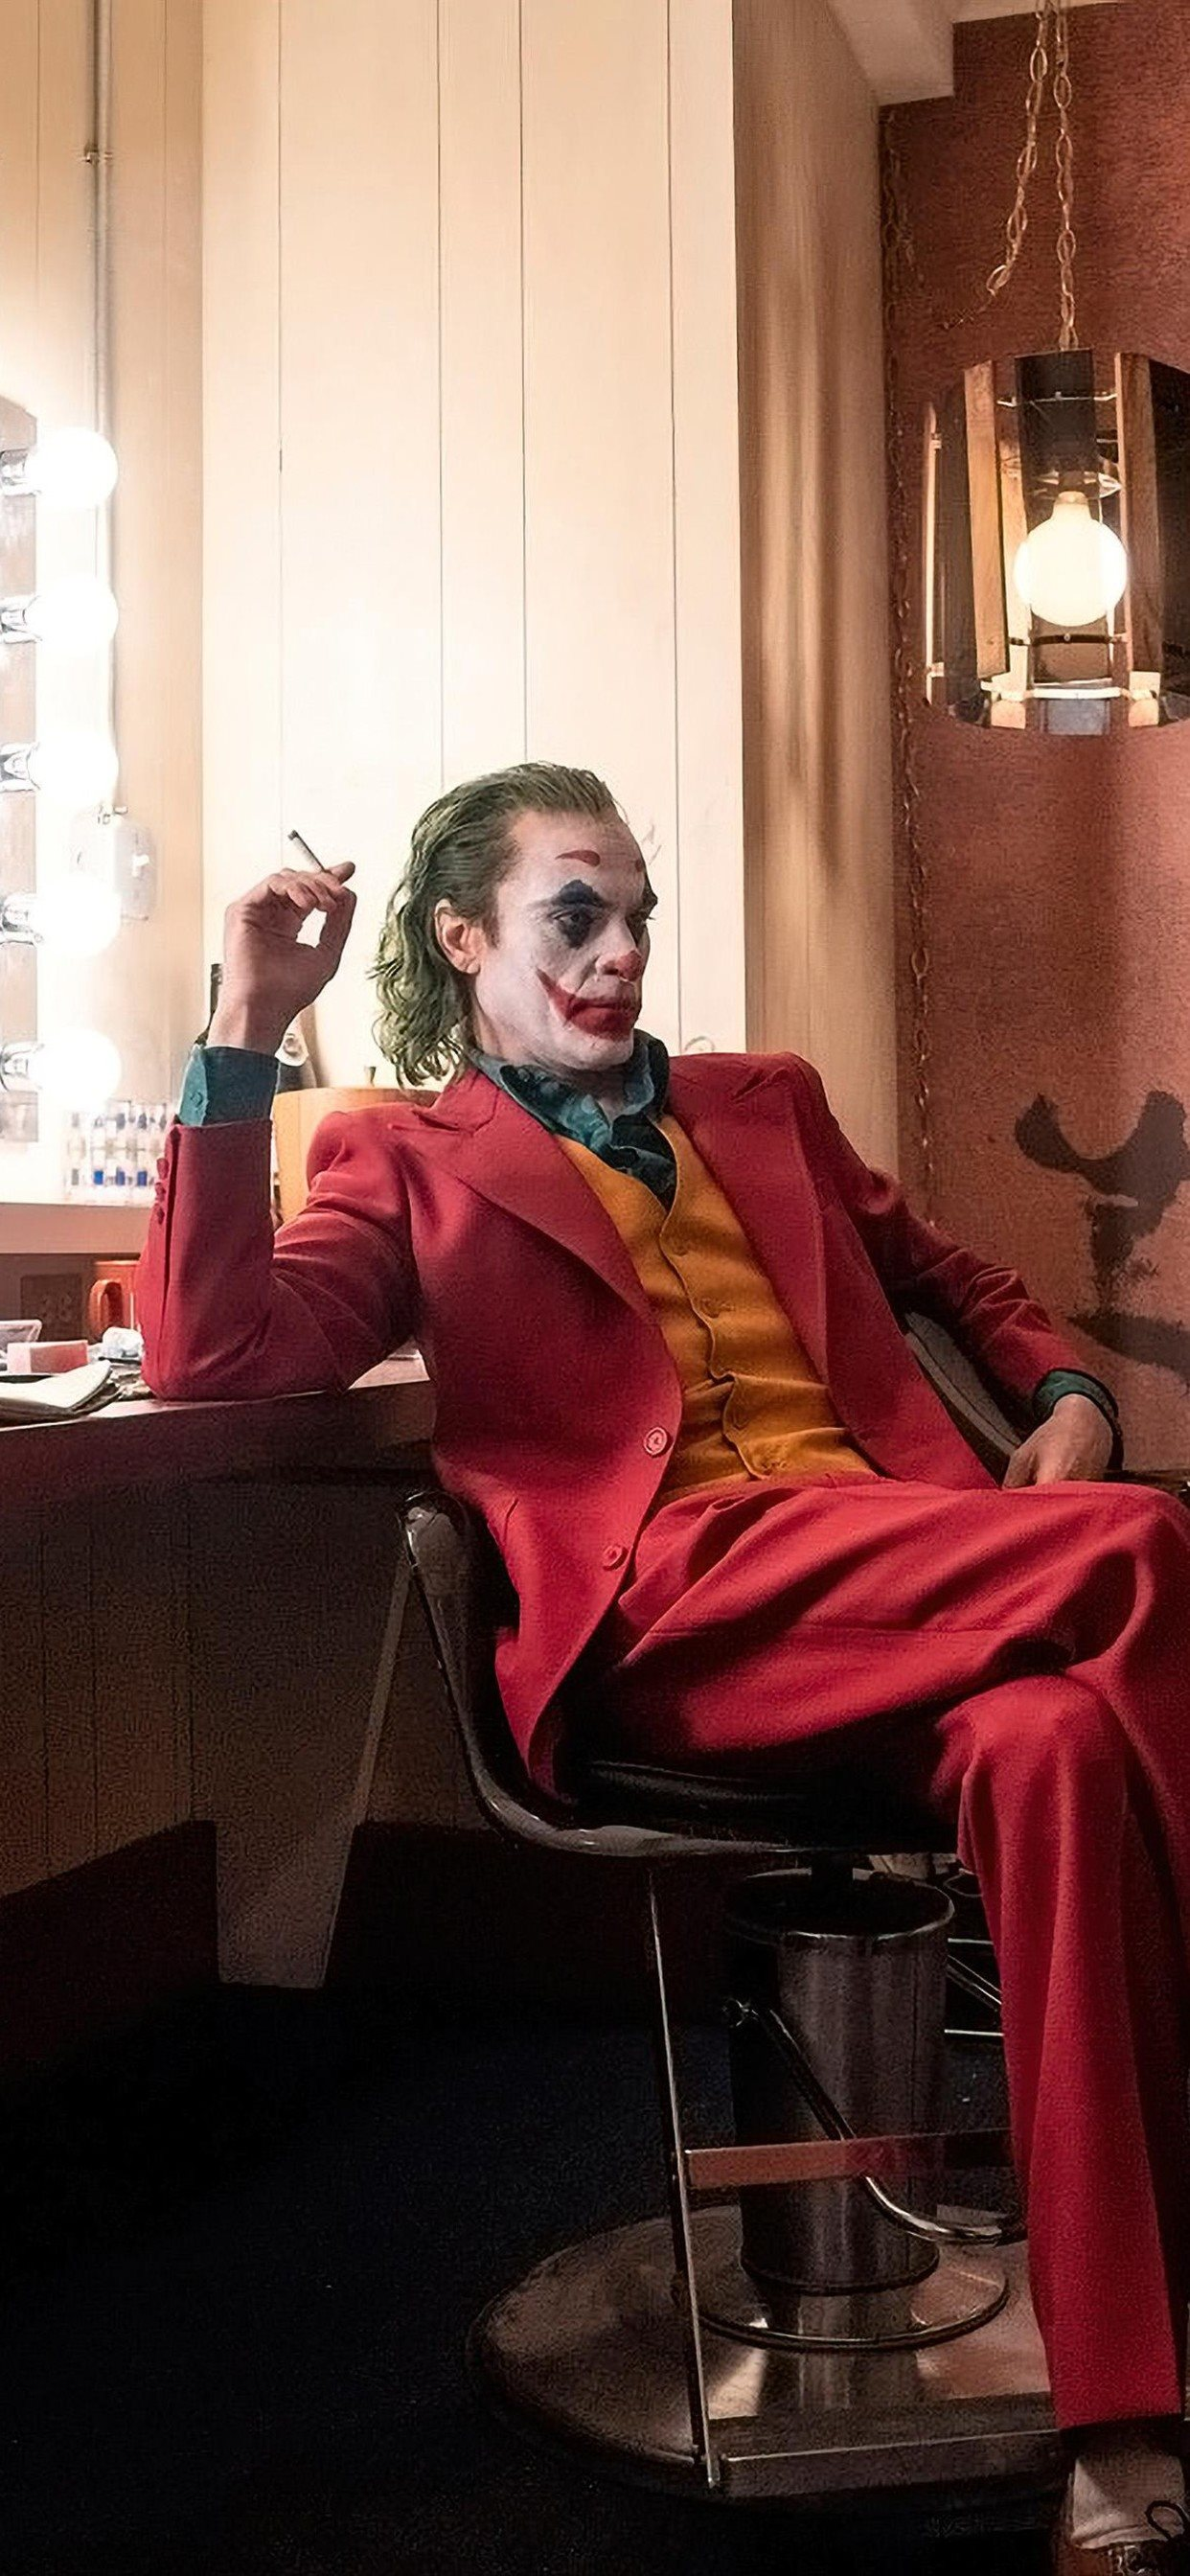 Joker Put On A Happy Face Iphone 11 Wallpapers Free Download